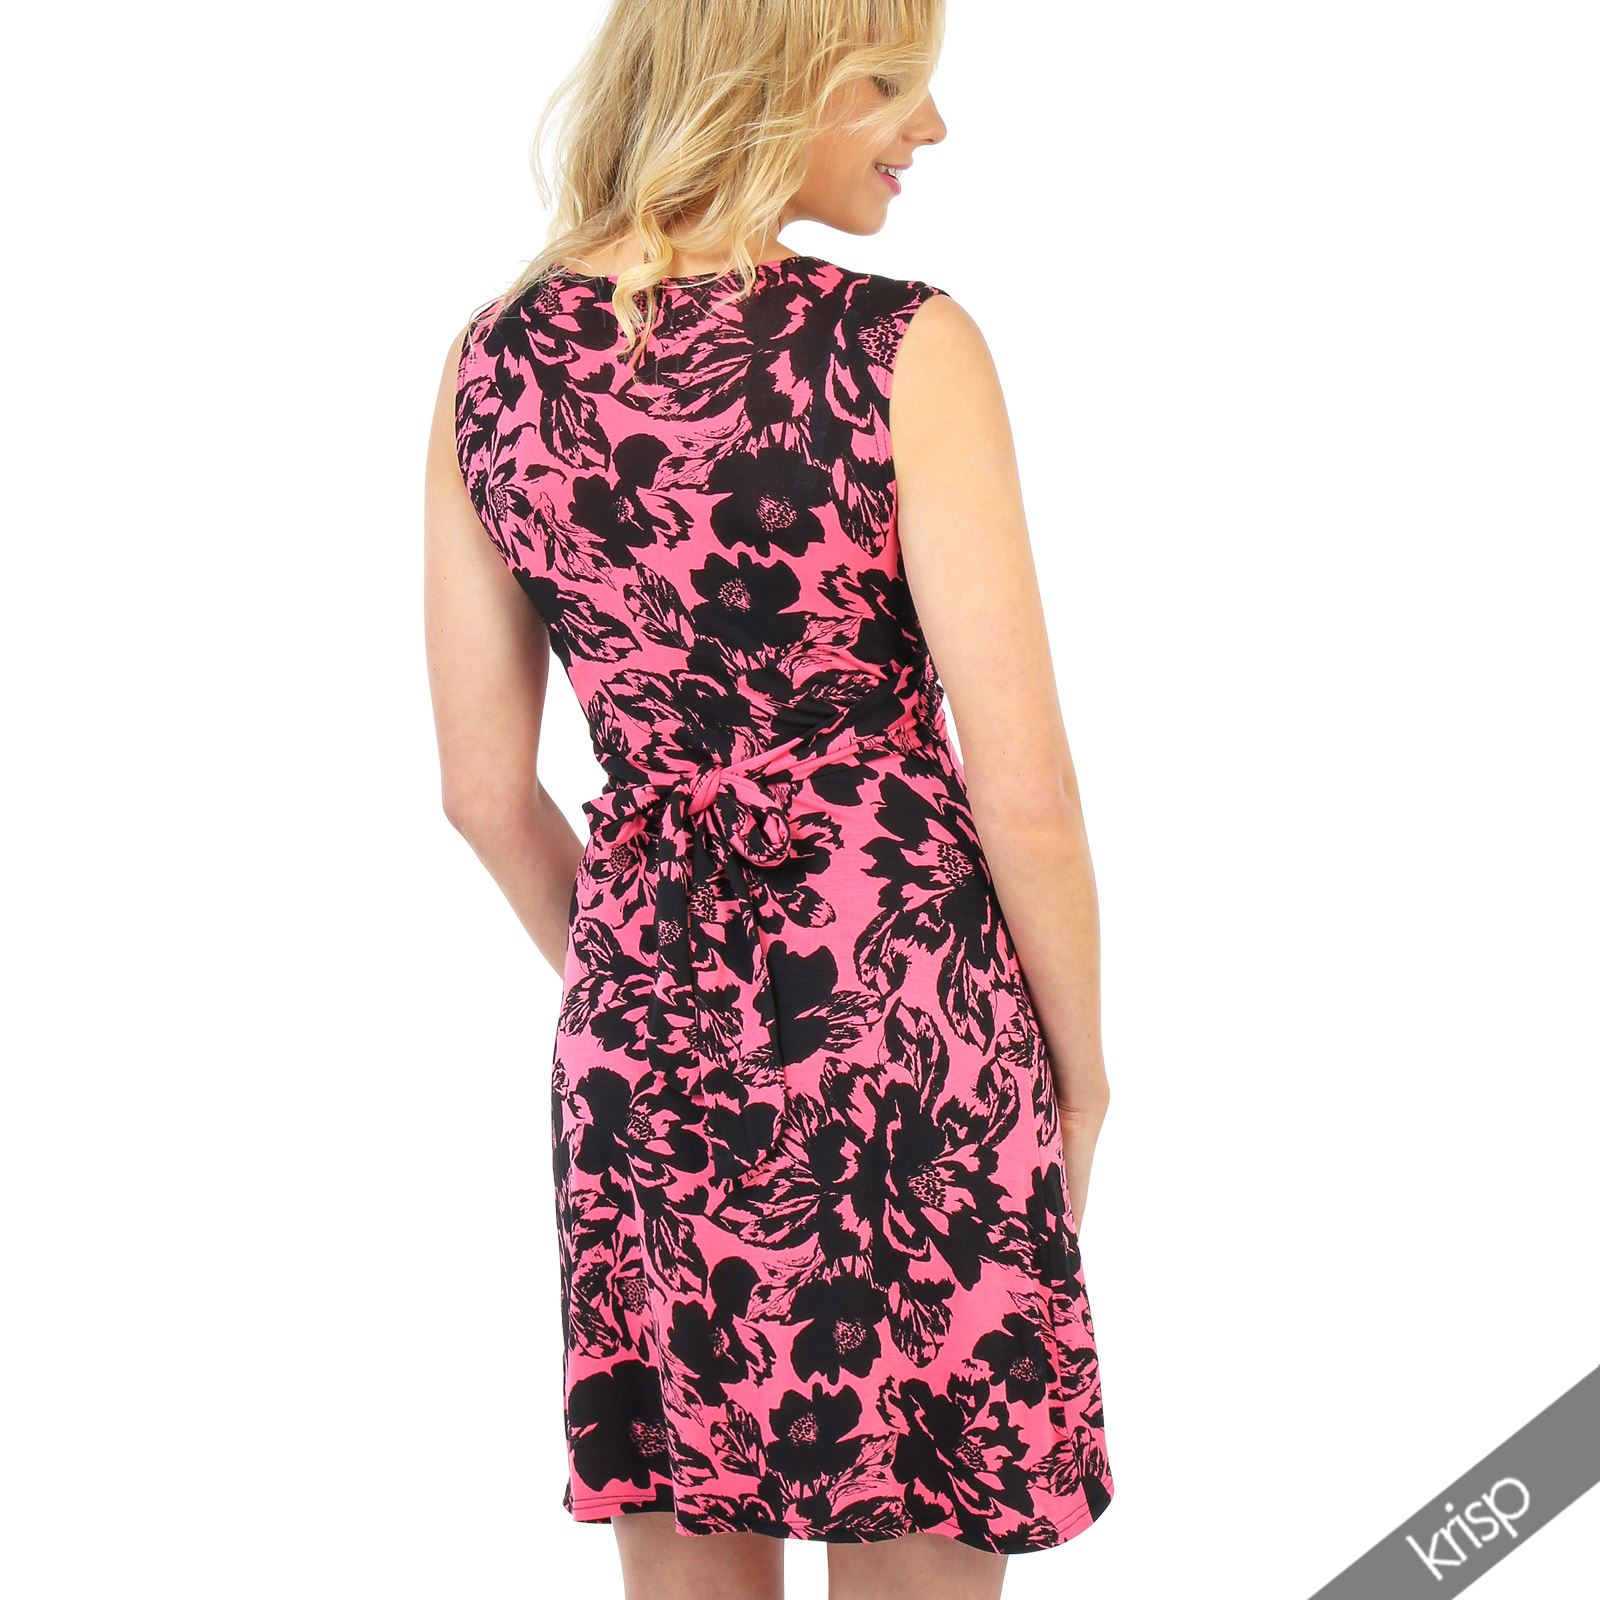 Womens-Ladies-Retro-Dress-Mini-Stretch-Drape-Ruched-Twist-Knot-Shift-Print thumbnail 4